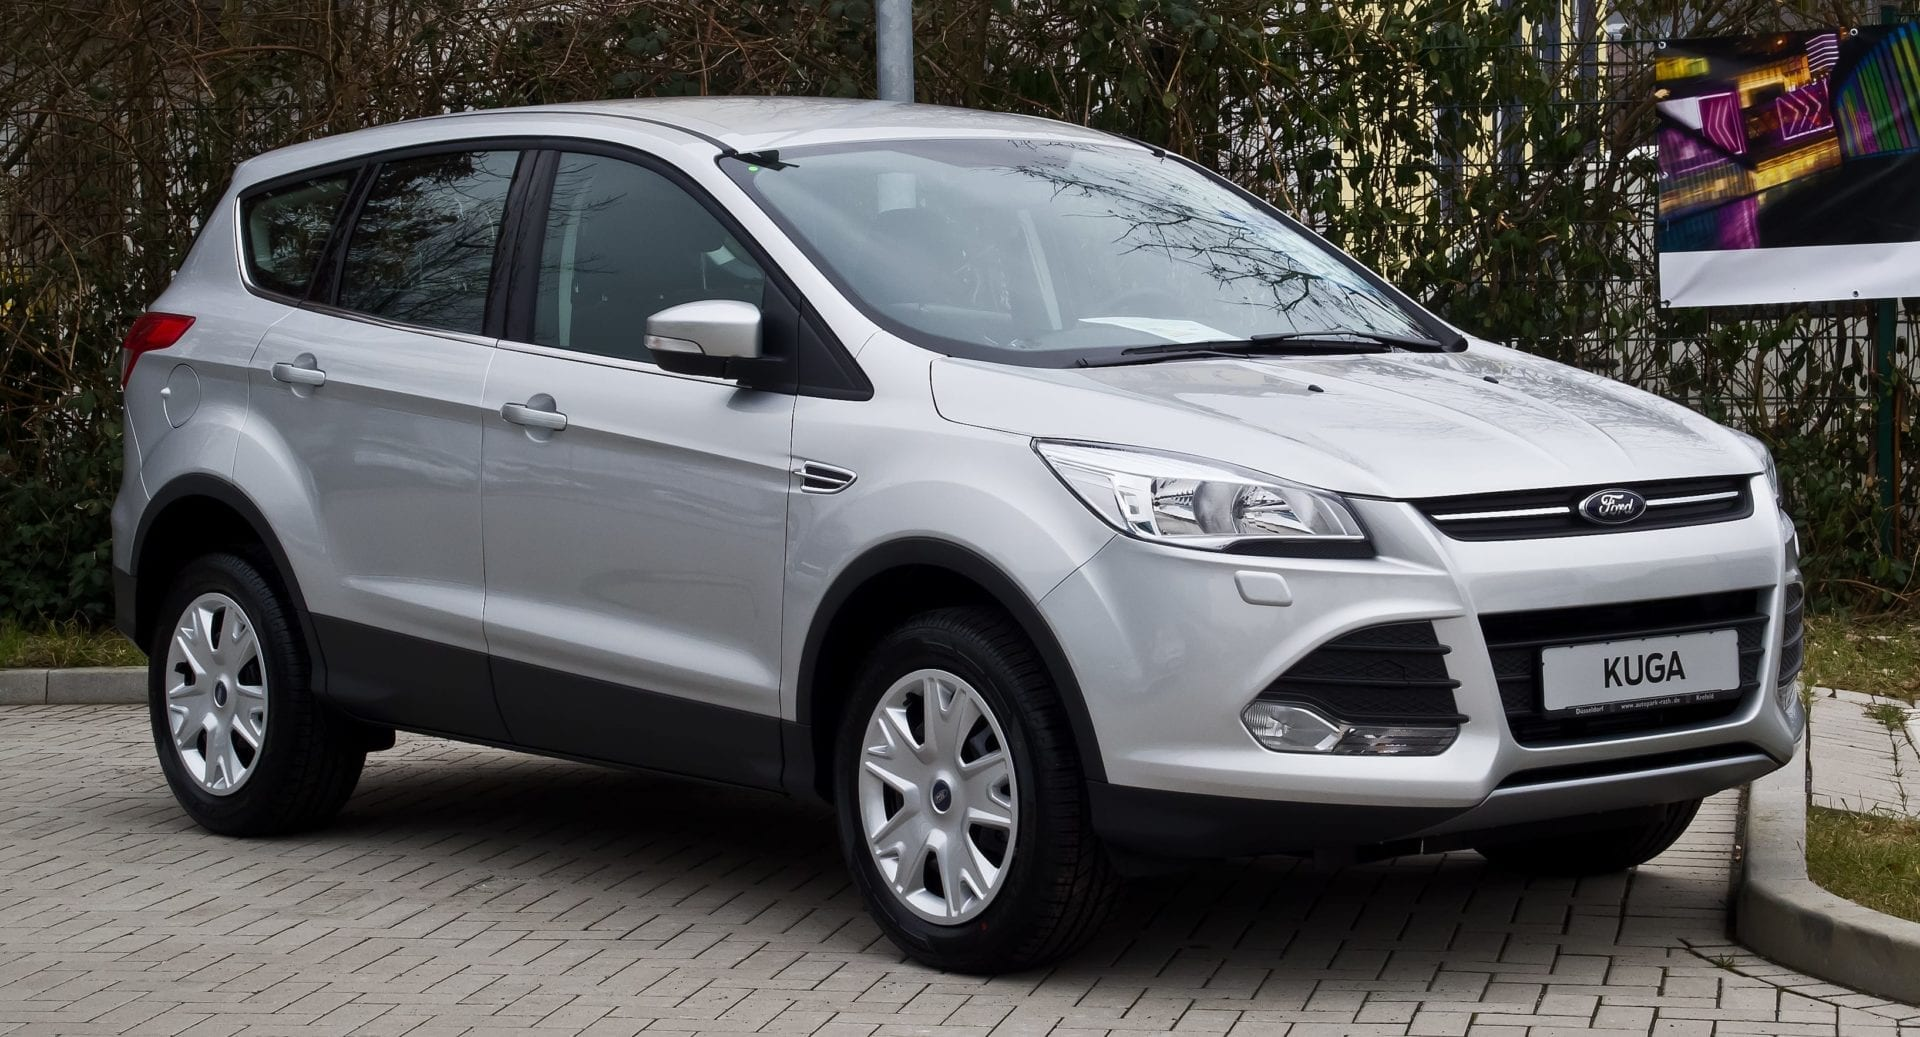 Ford's solid start to 2017 despite Kuga recall